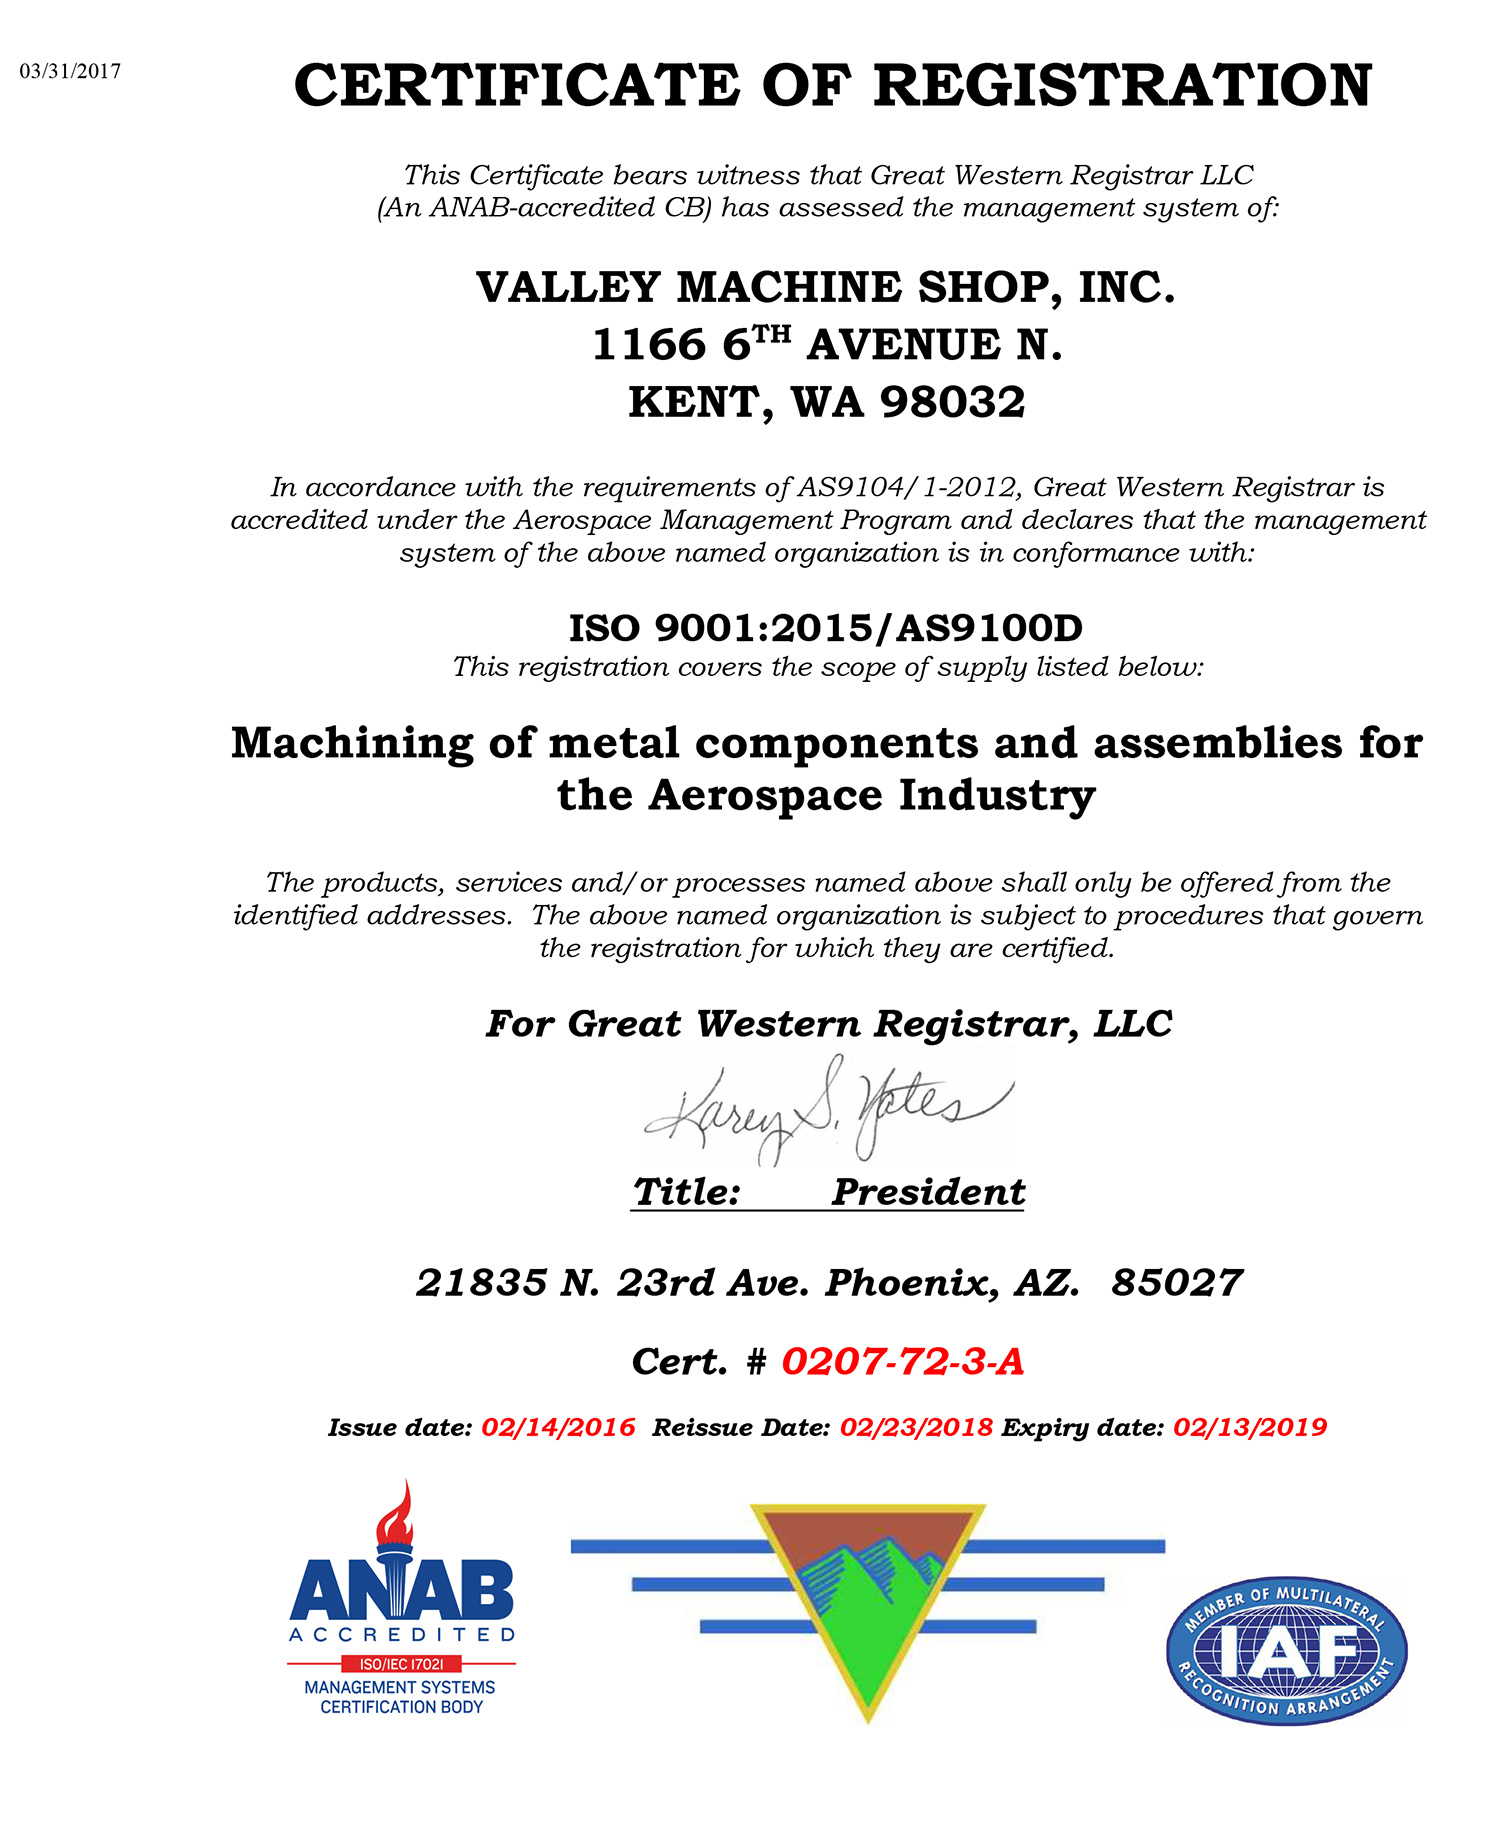 Valley Machine Shop Certifications